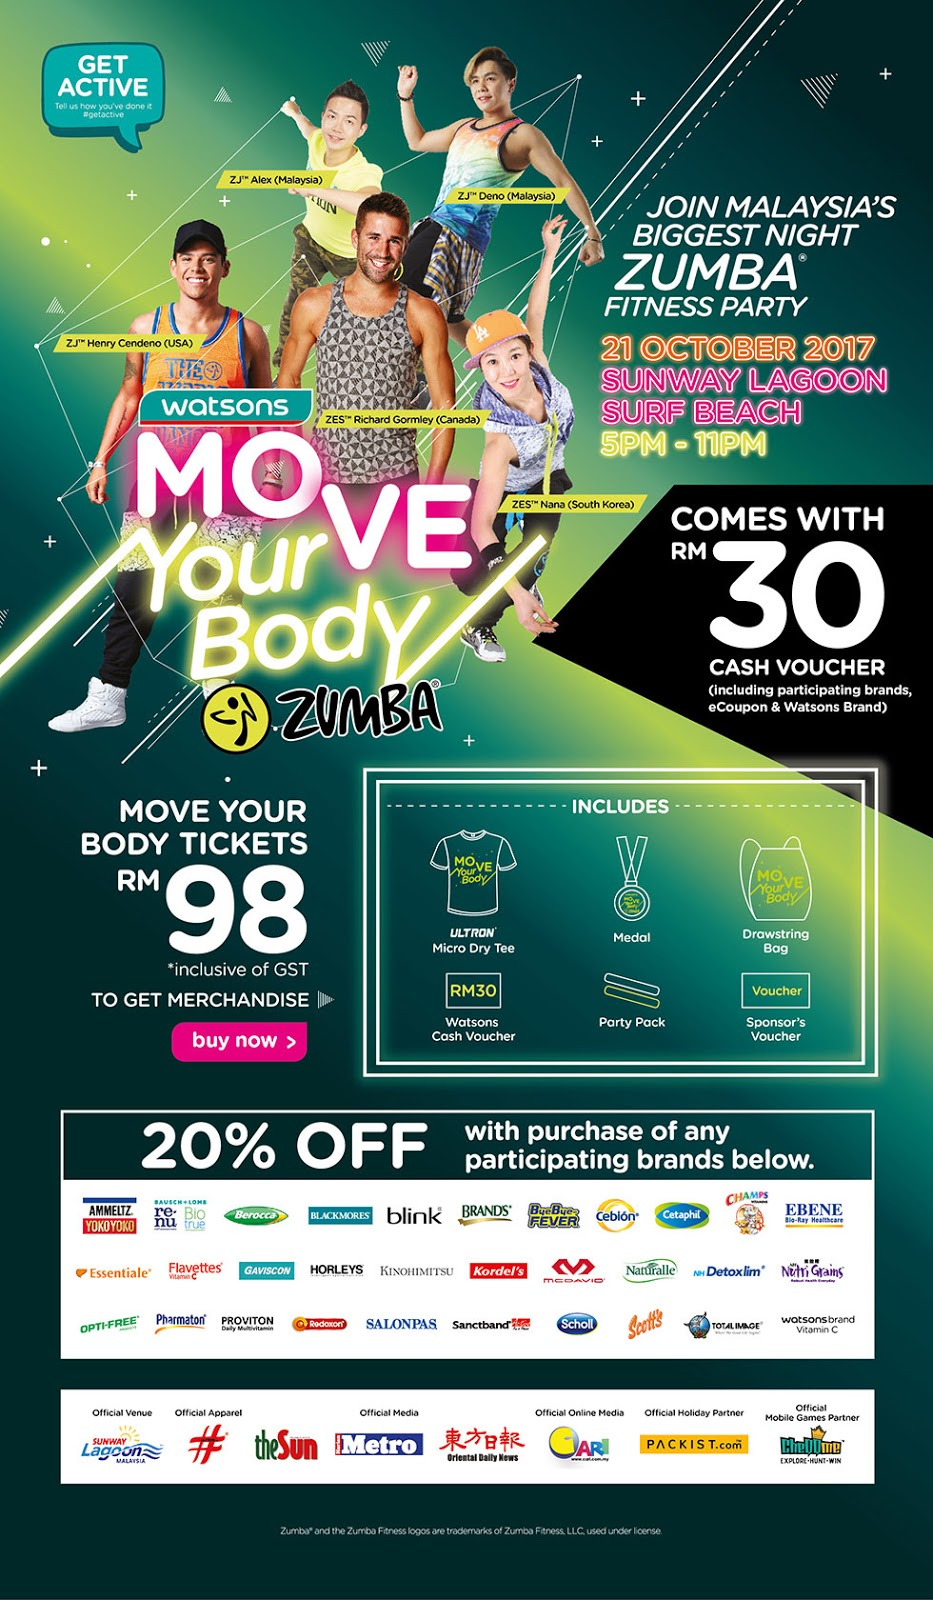 Watsons Move Your Body Zumba 2017 2